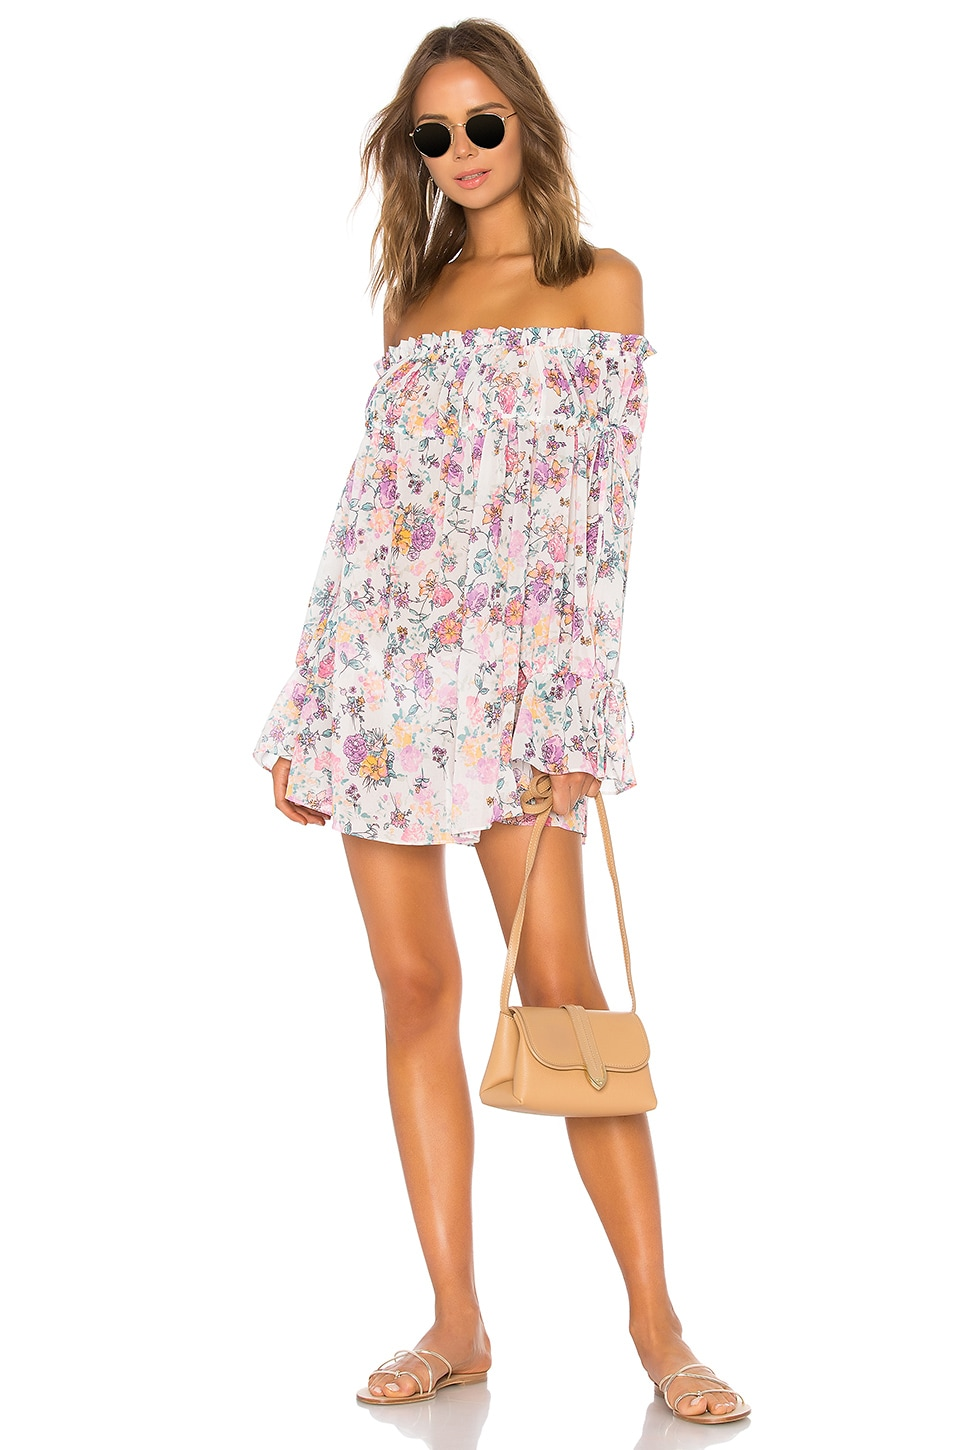 Tularosa Brogan Mini Dress in Pastel Floral